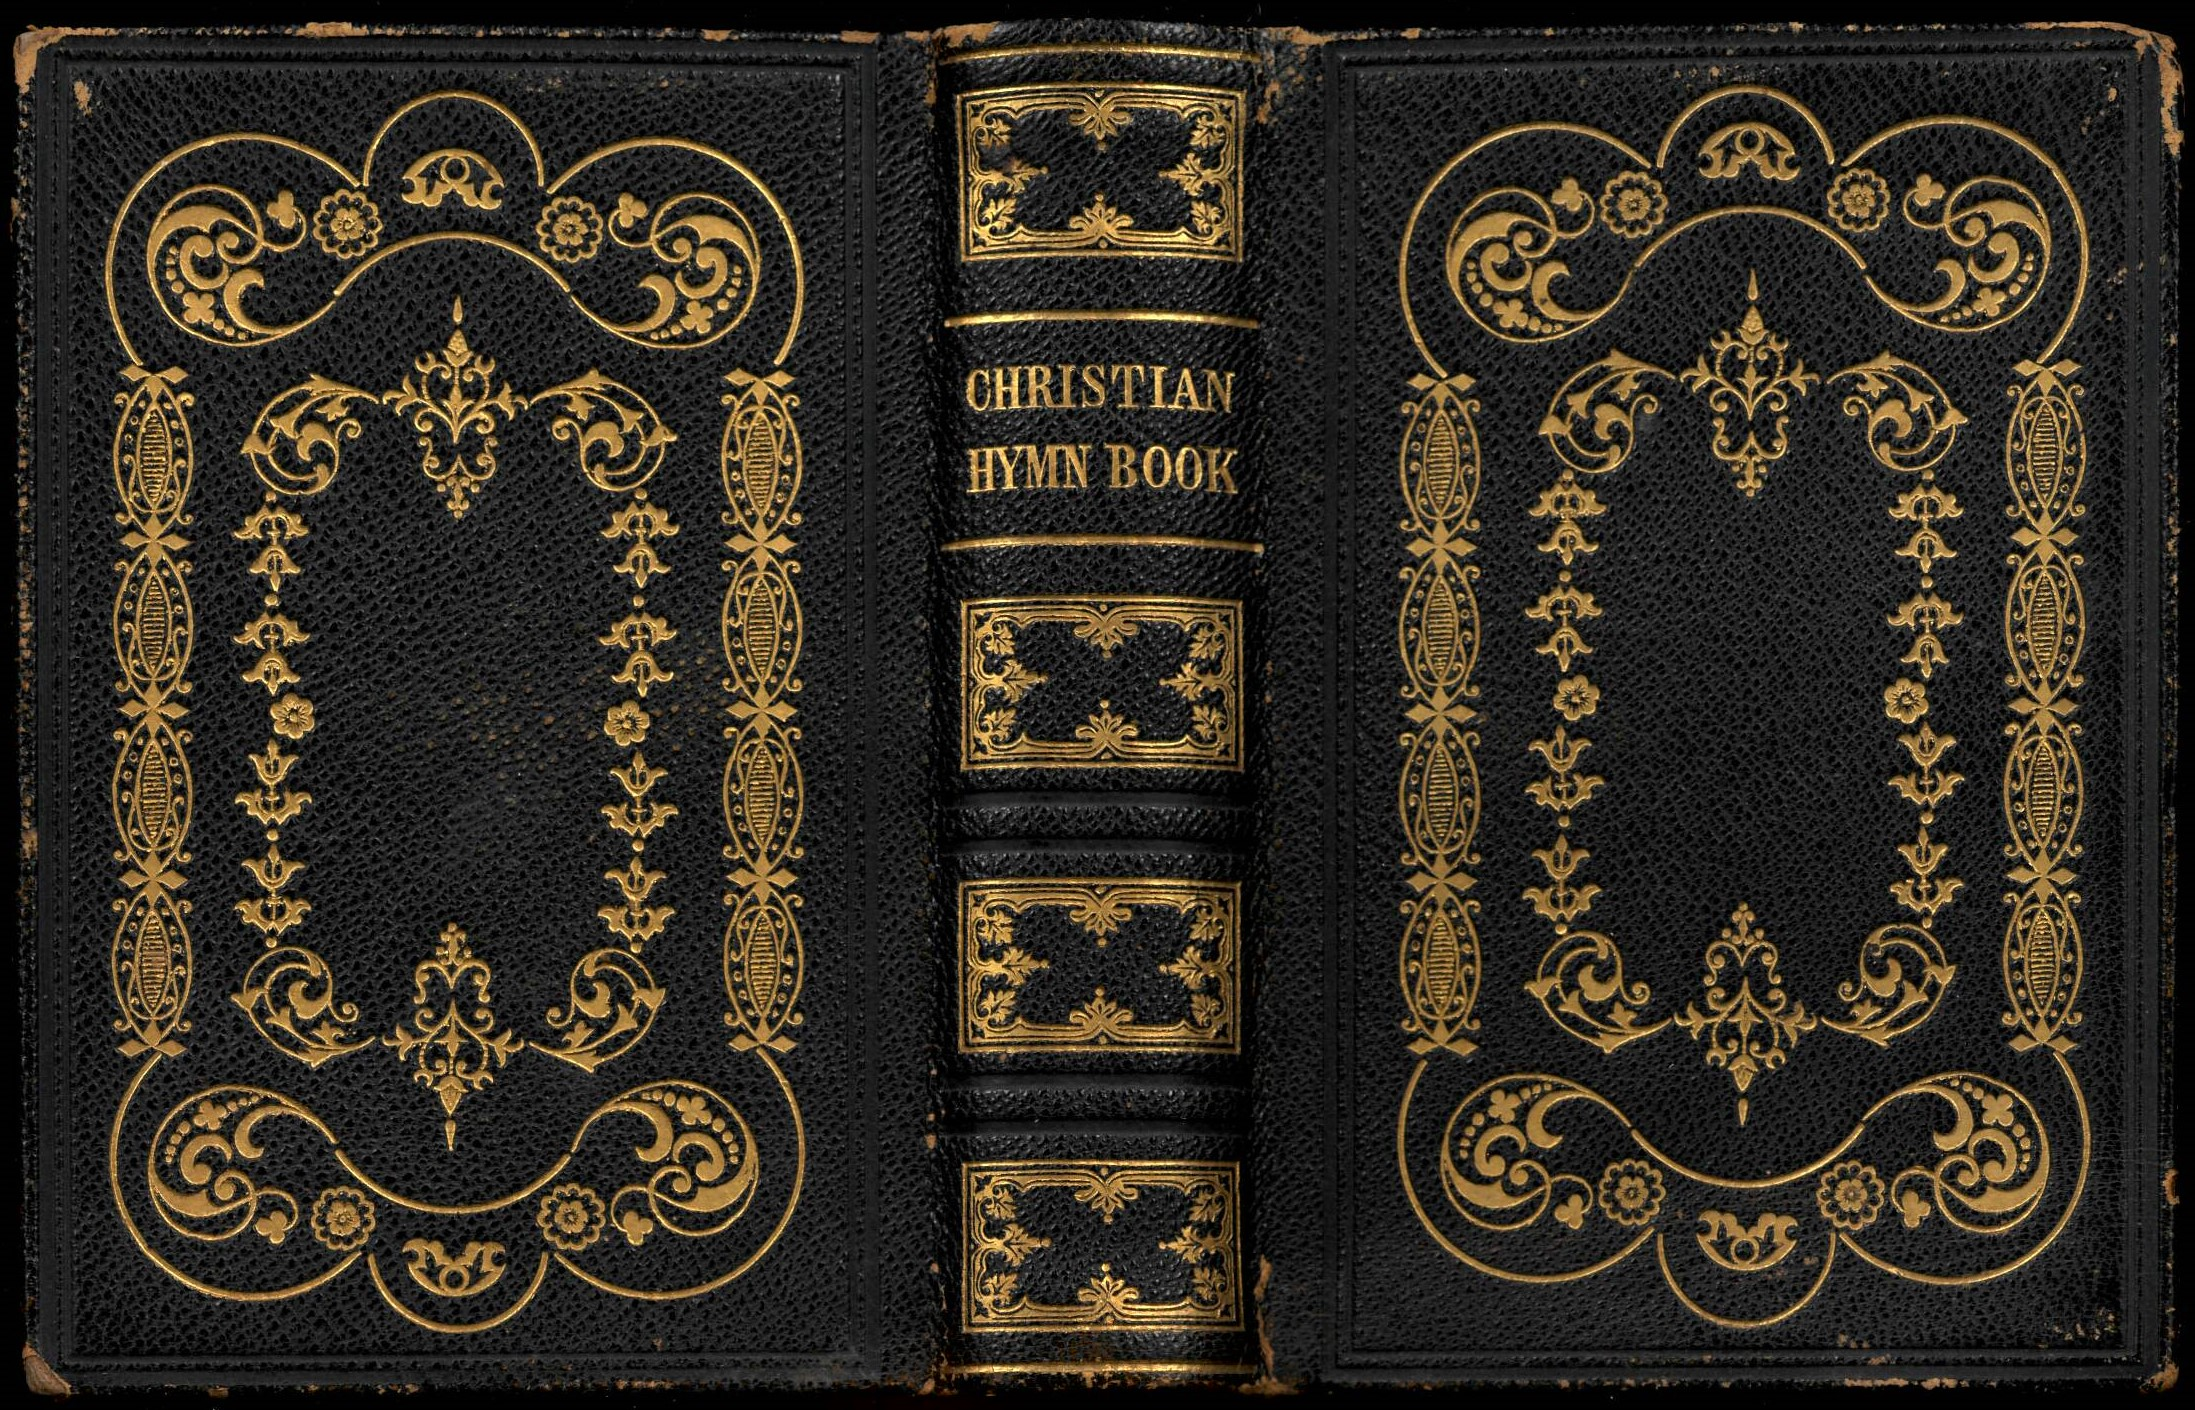 The Christian Hymn Book: A Compilation of Psalms, Hymns and Spiritual Songs, Original and Selected. 5th ed. Printed and Published by A. Campbell: Bethany, 1860. Covers.